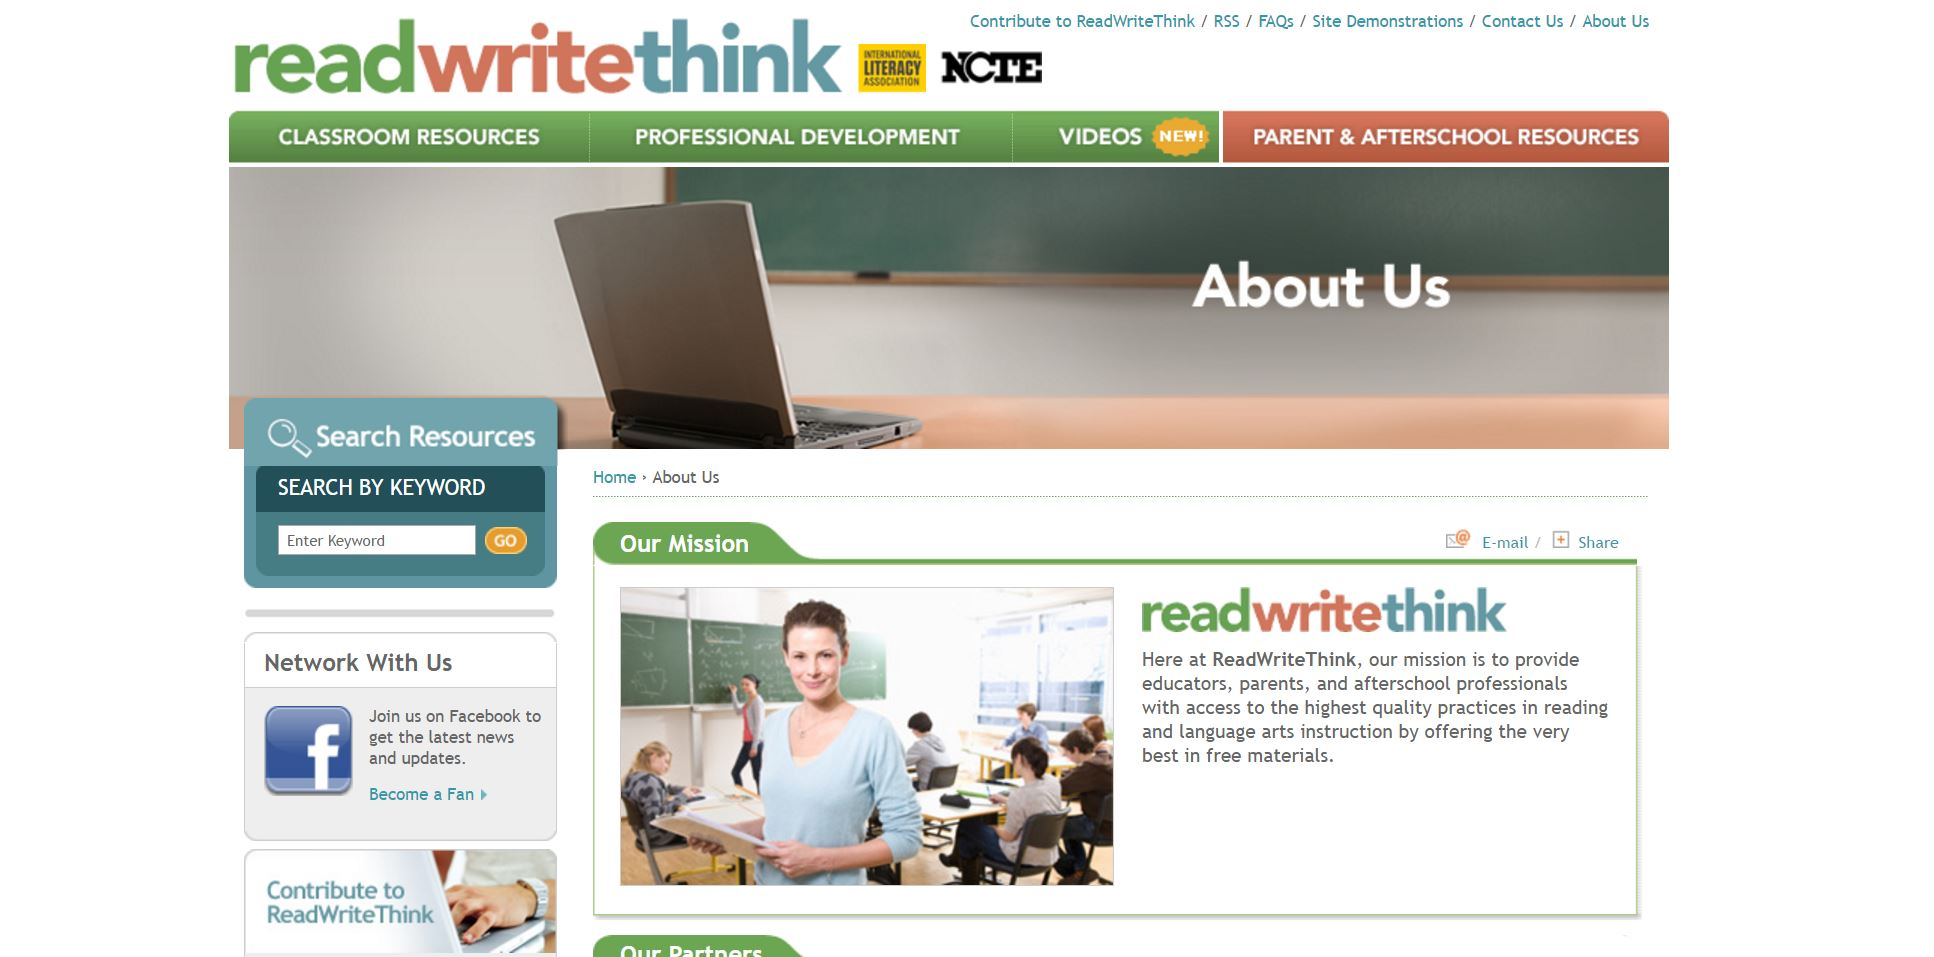 read write think letter Read write think resume generator - 28 images - resume generator generators and resume on, readwritethink resume generator haadyaooverbayresort within readwritethink.